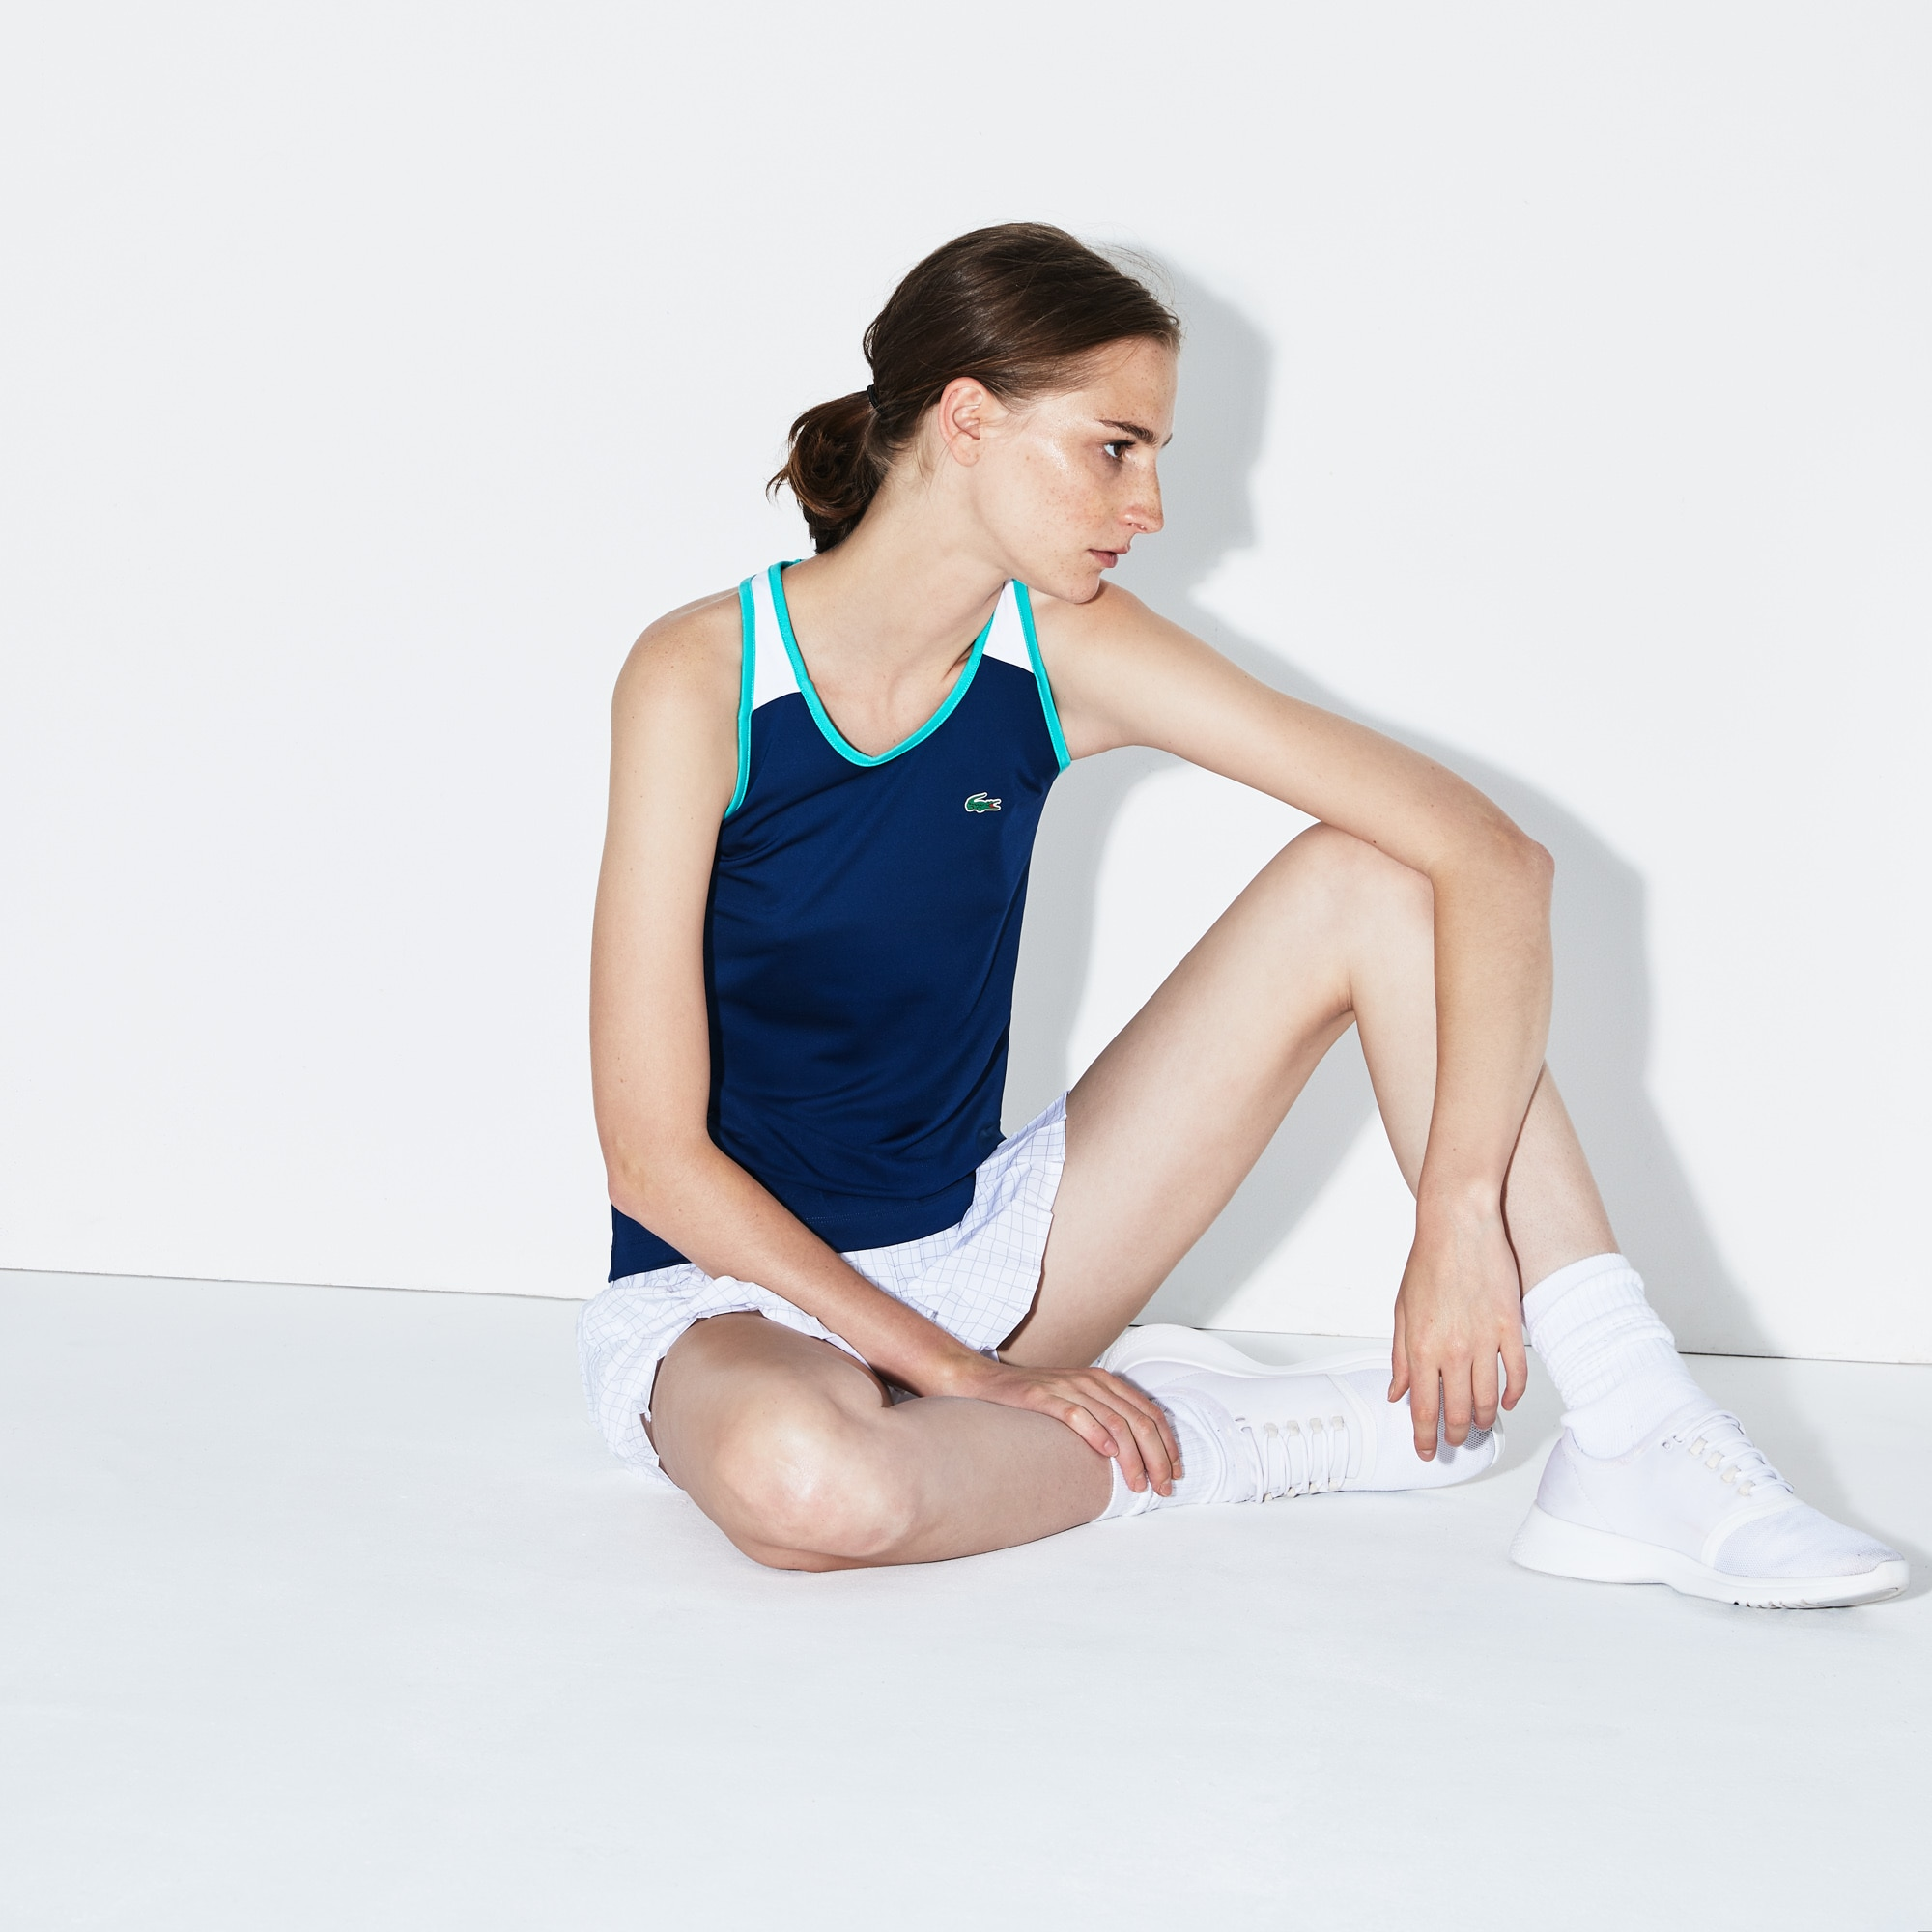 Women's SPORT Stretch Jersey Racerback Tennis Tank Top